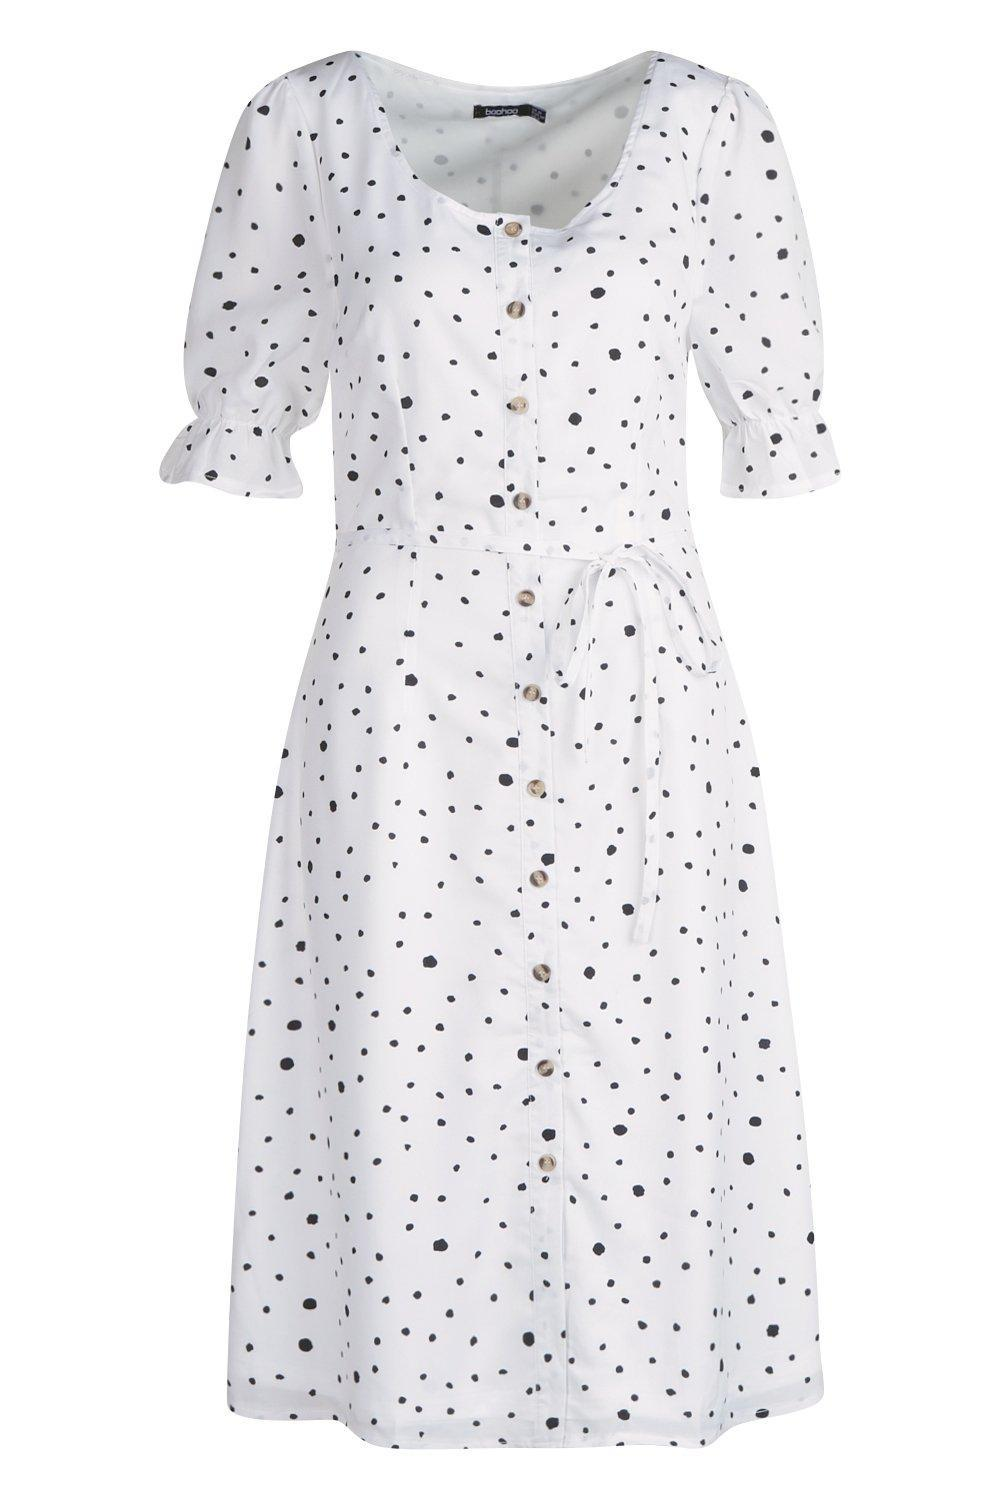 2df64582a35 Lyst - Boohoo Dalmatian Polka Dot Button Through Midi Dress in White